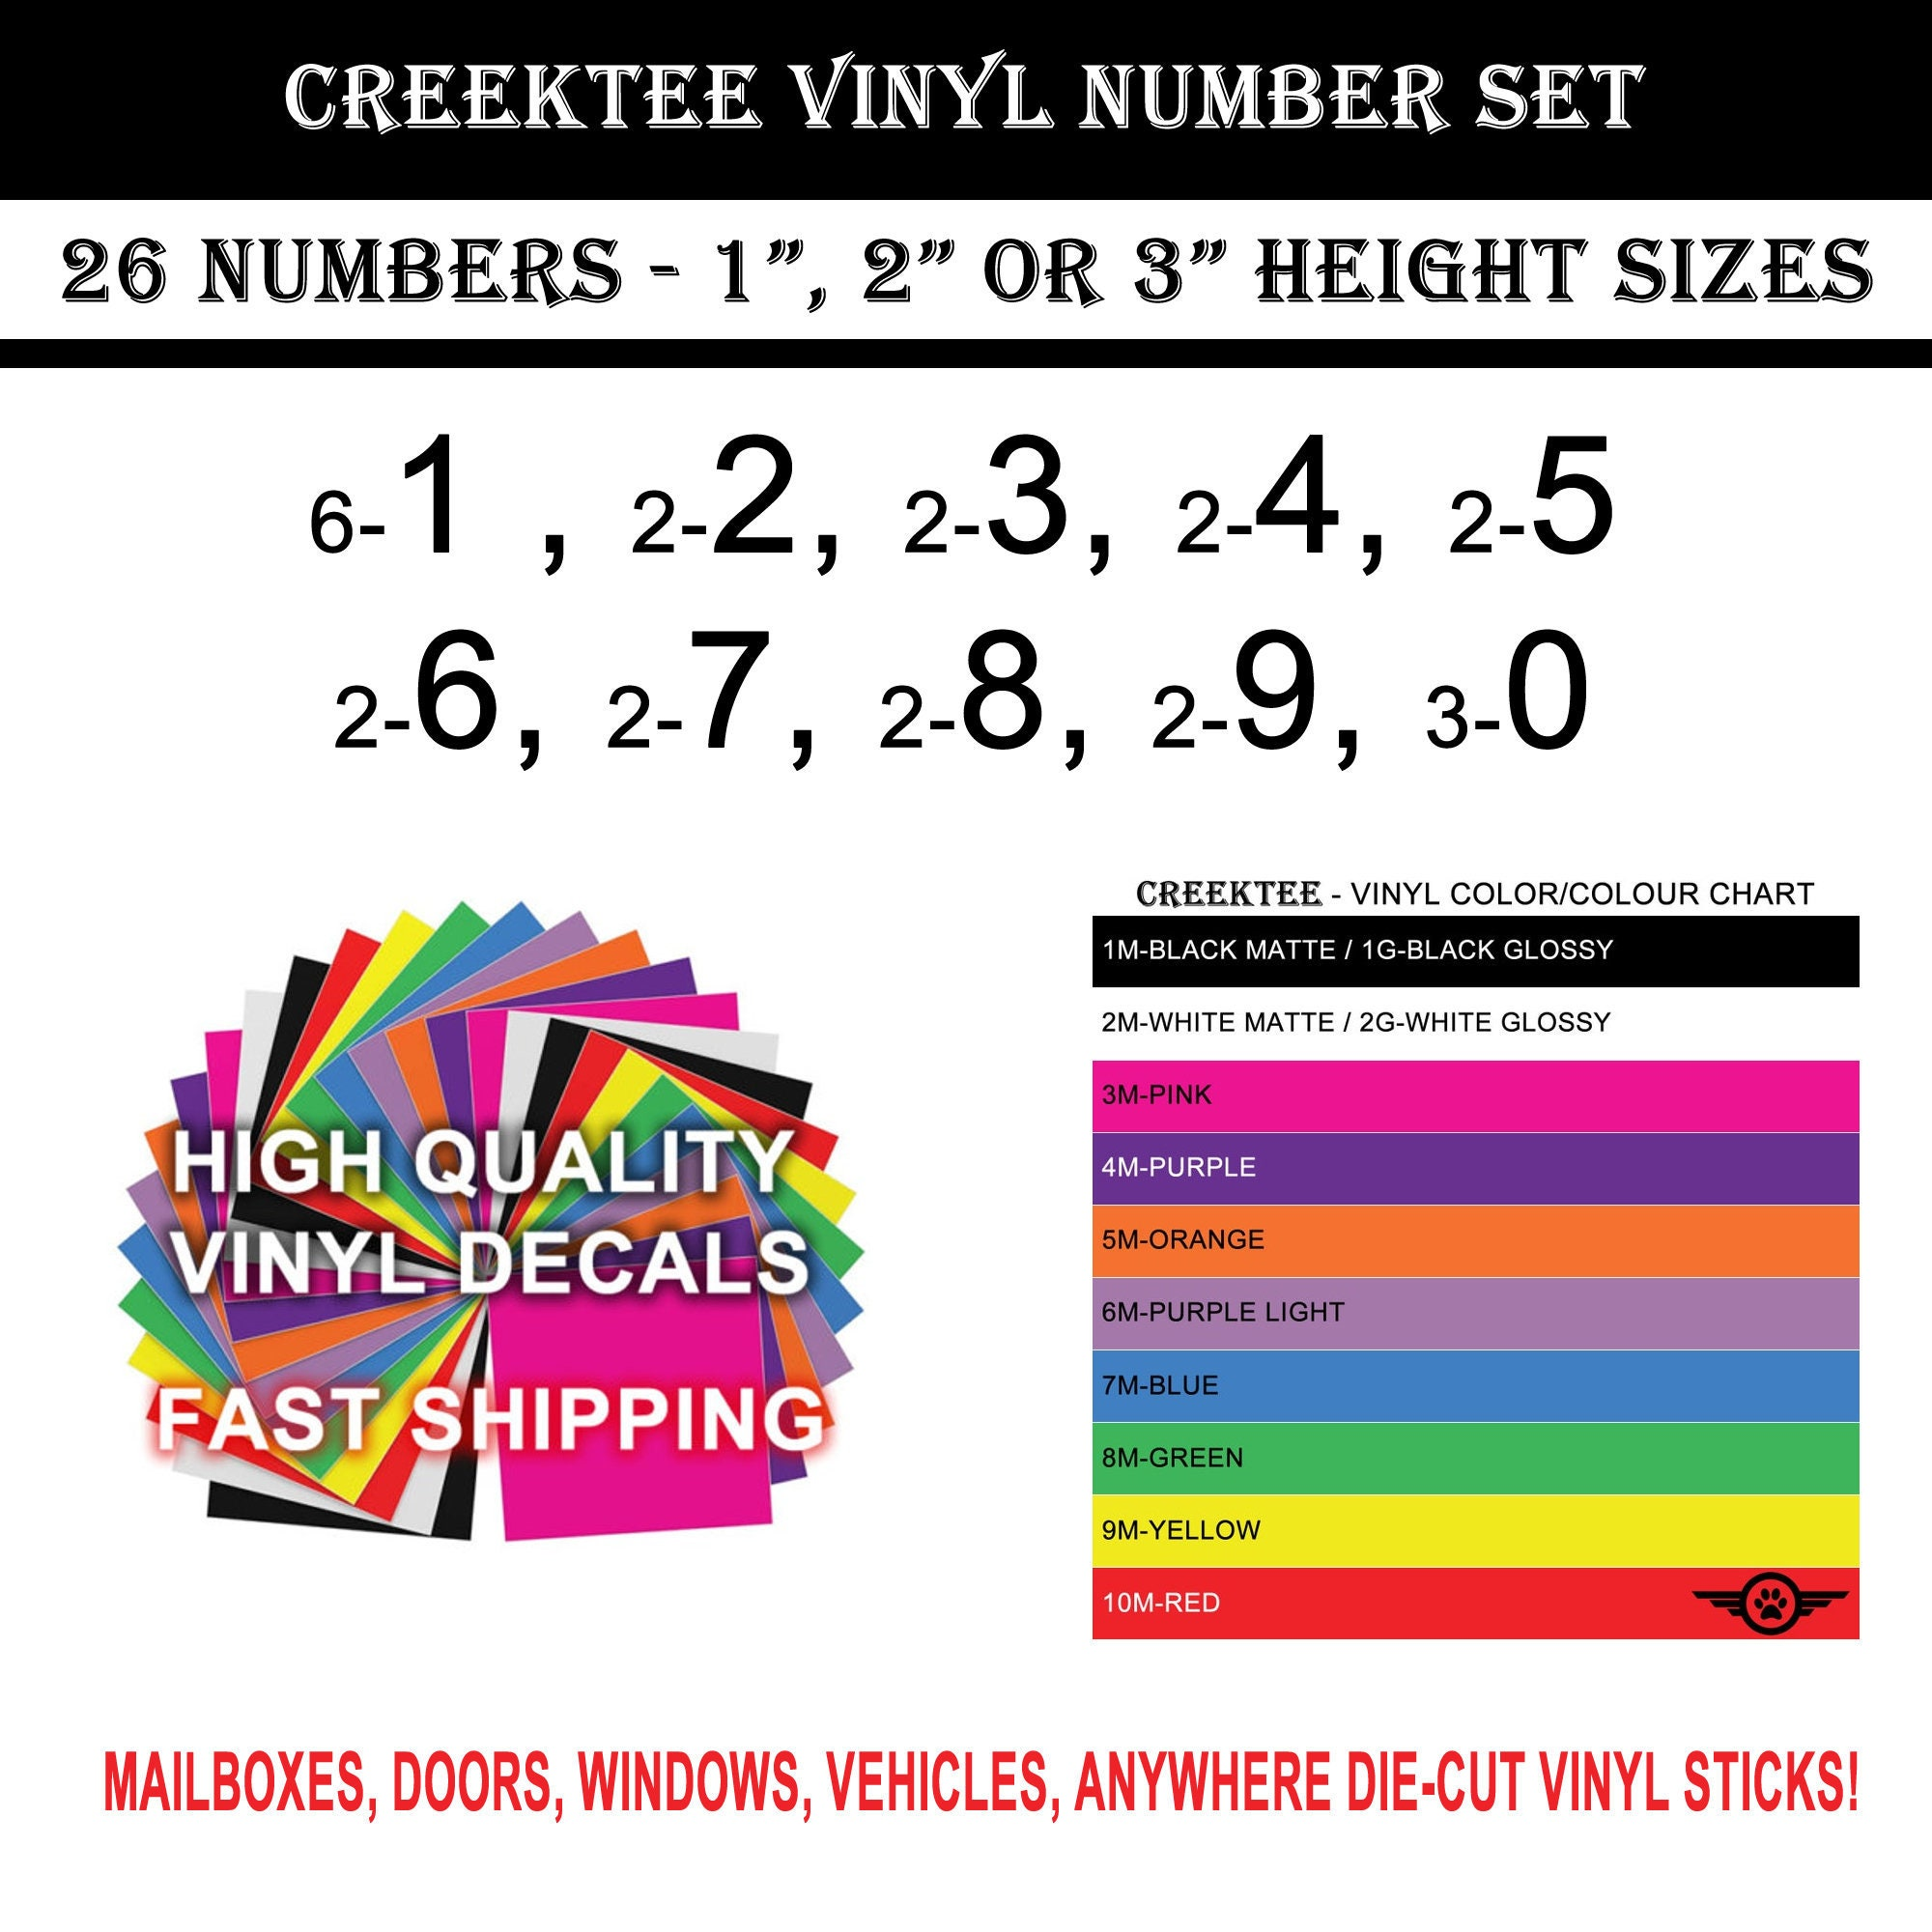 CAD$7.99 - 26 Vinyl Numbers Chrome or Standard High Quality Cars, Trucks, Vans, Windows, Boats, Mailboxes, 1 inch , 2 inch and 3 inch heights